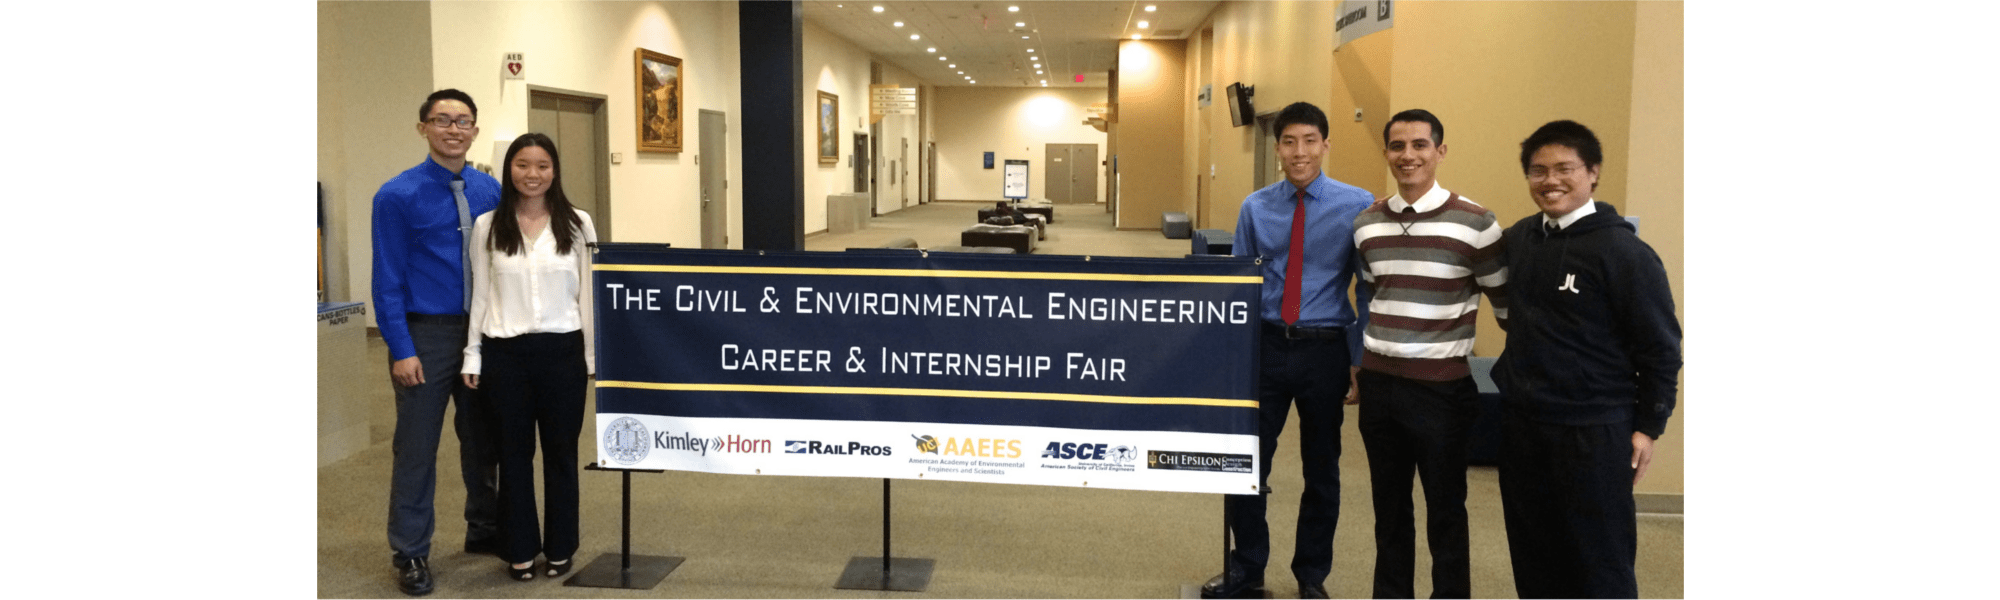 2nd CEE Career and Internship Fair